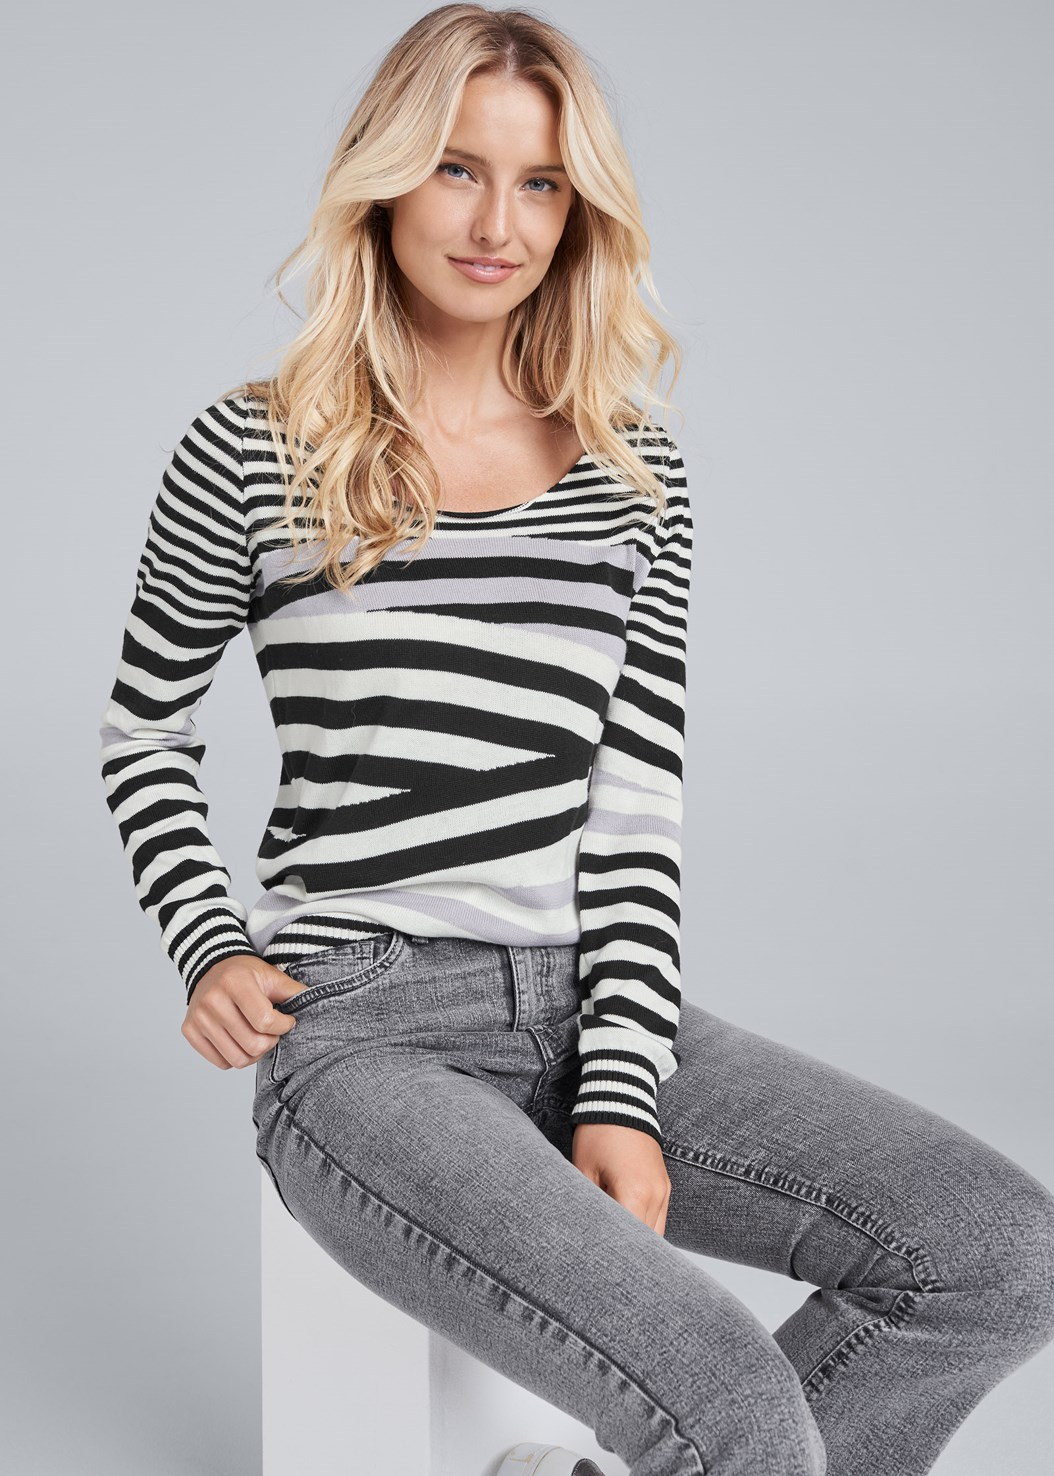 Striped Crew Neck Sweater,Washed Kick Flare Jeans